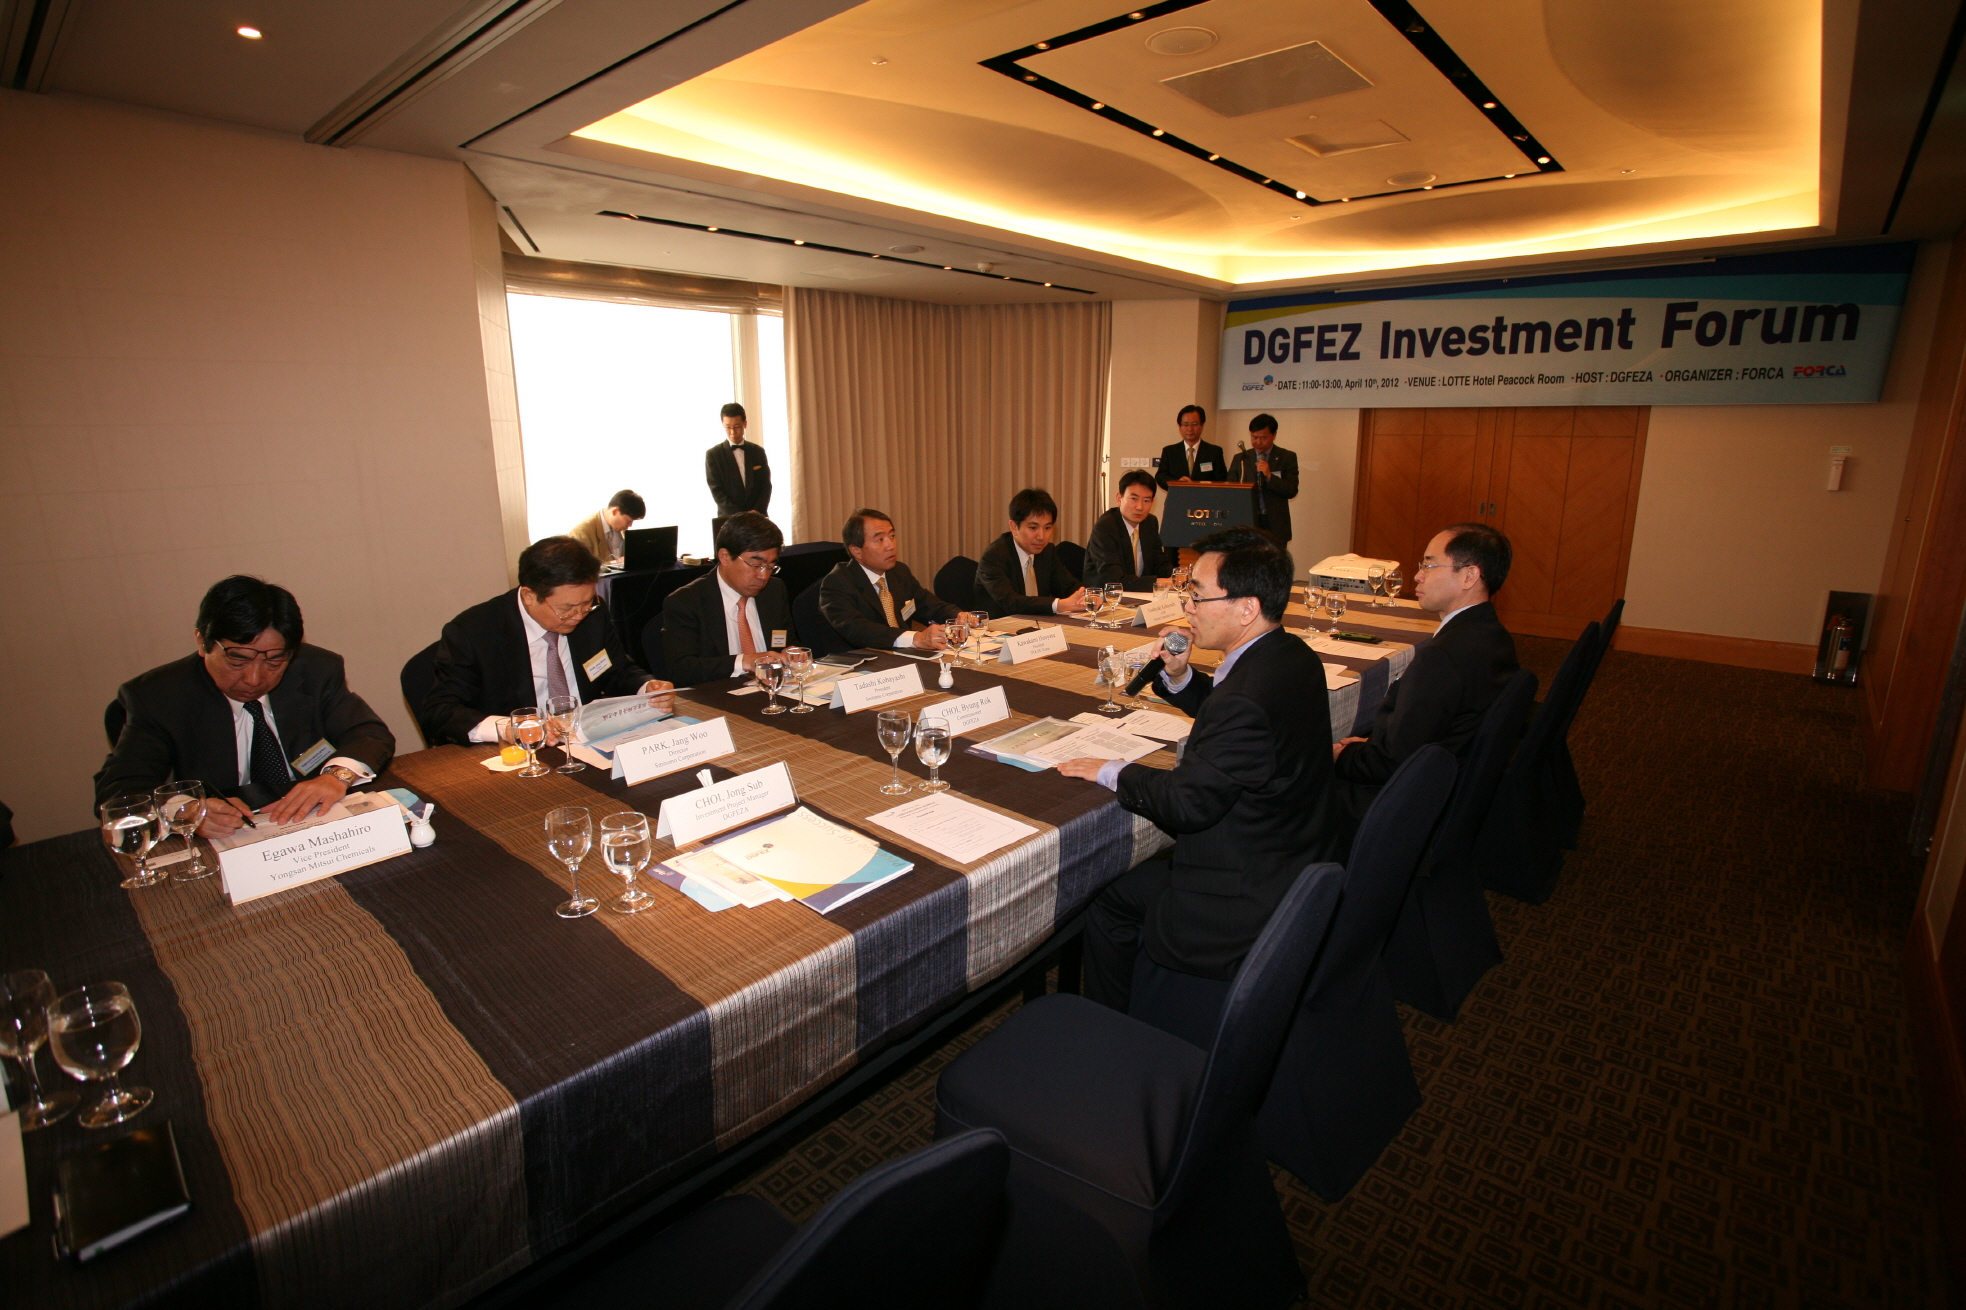 DGFEZ Investment Forum for Jap...